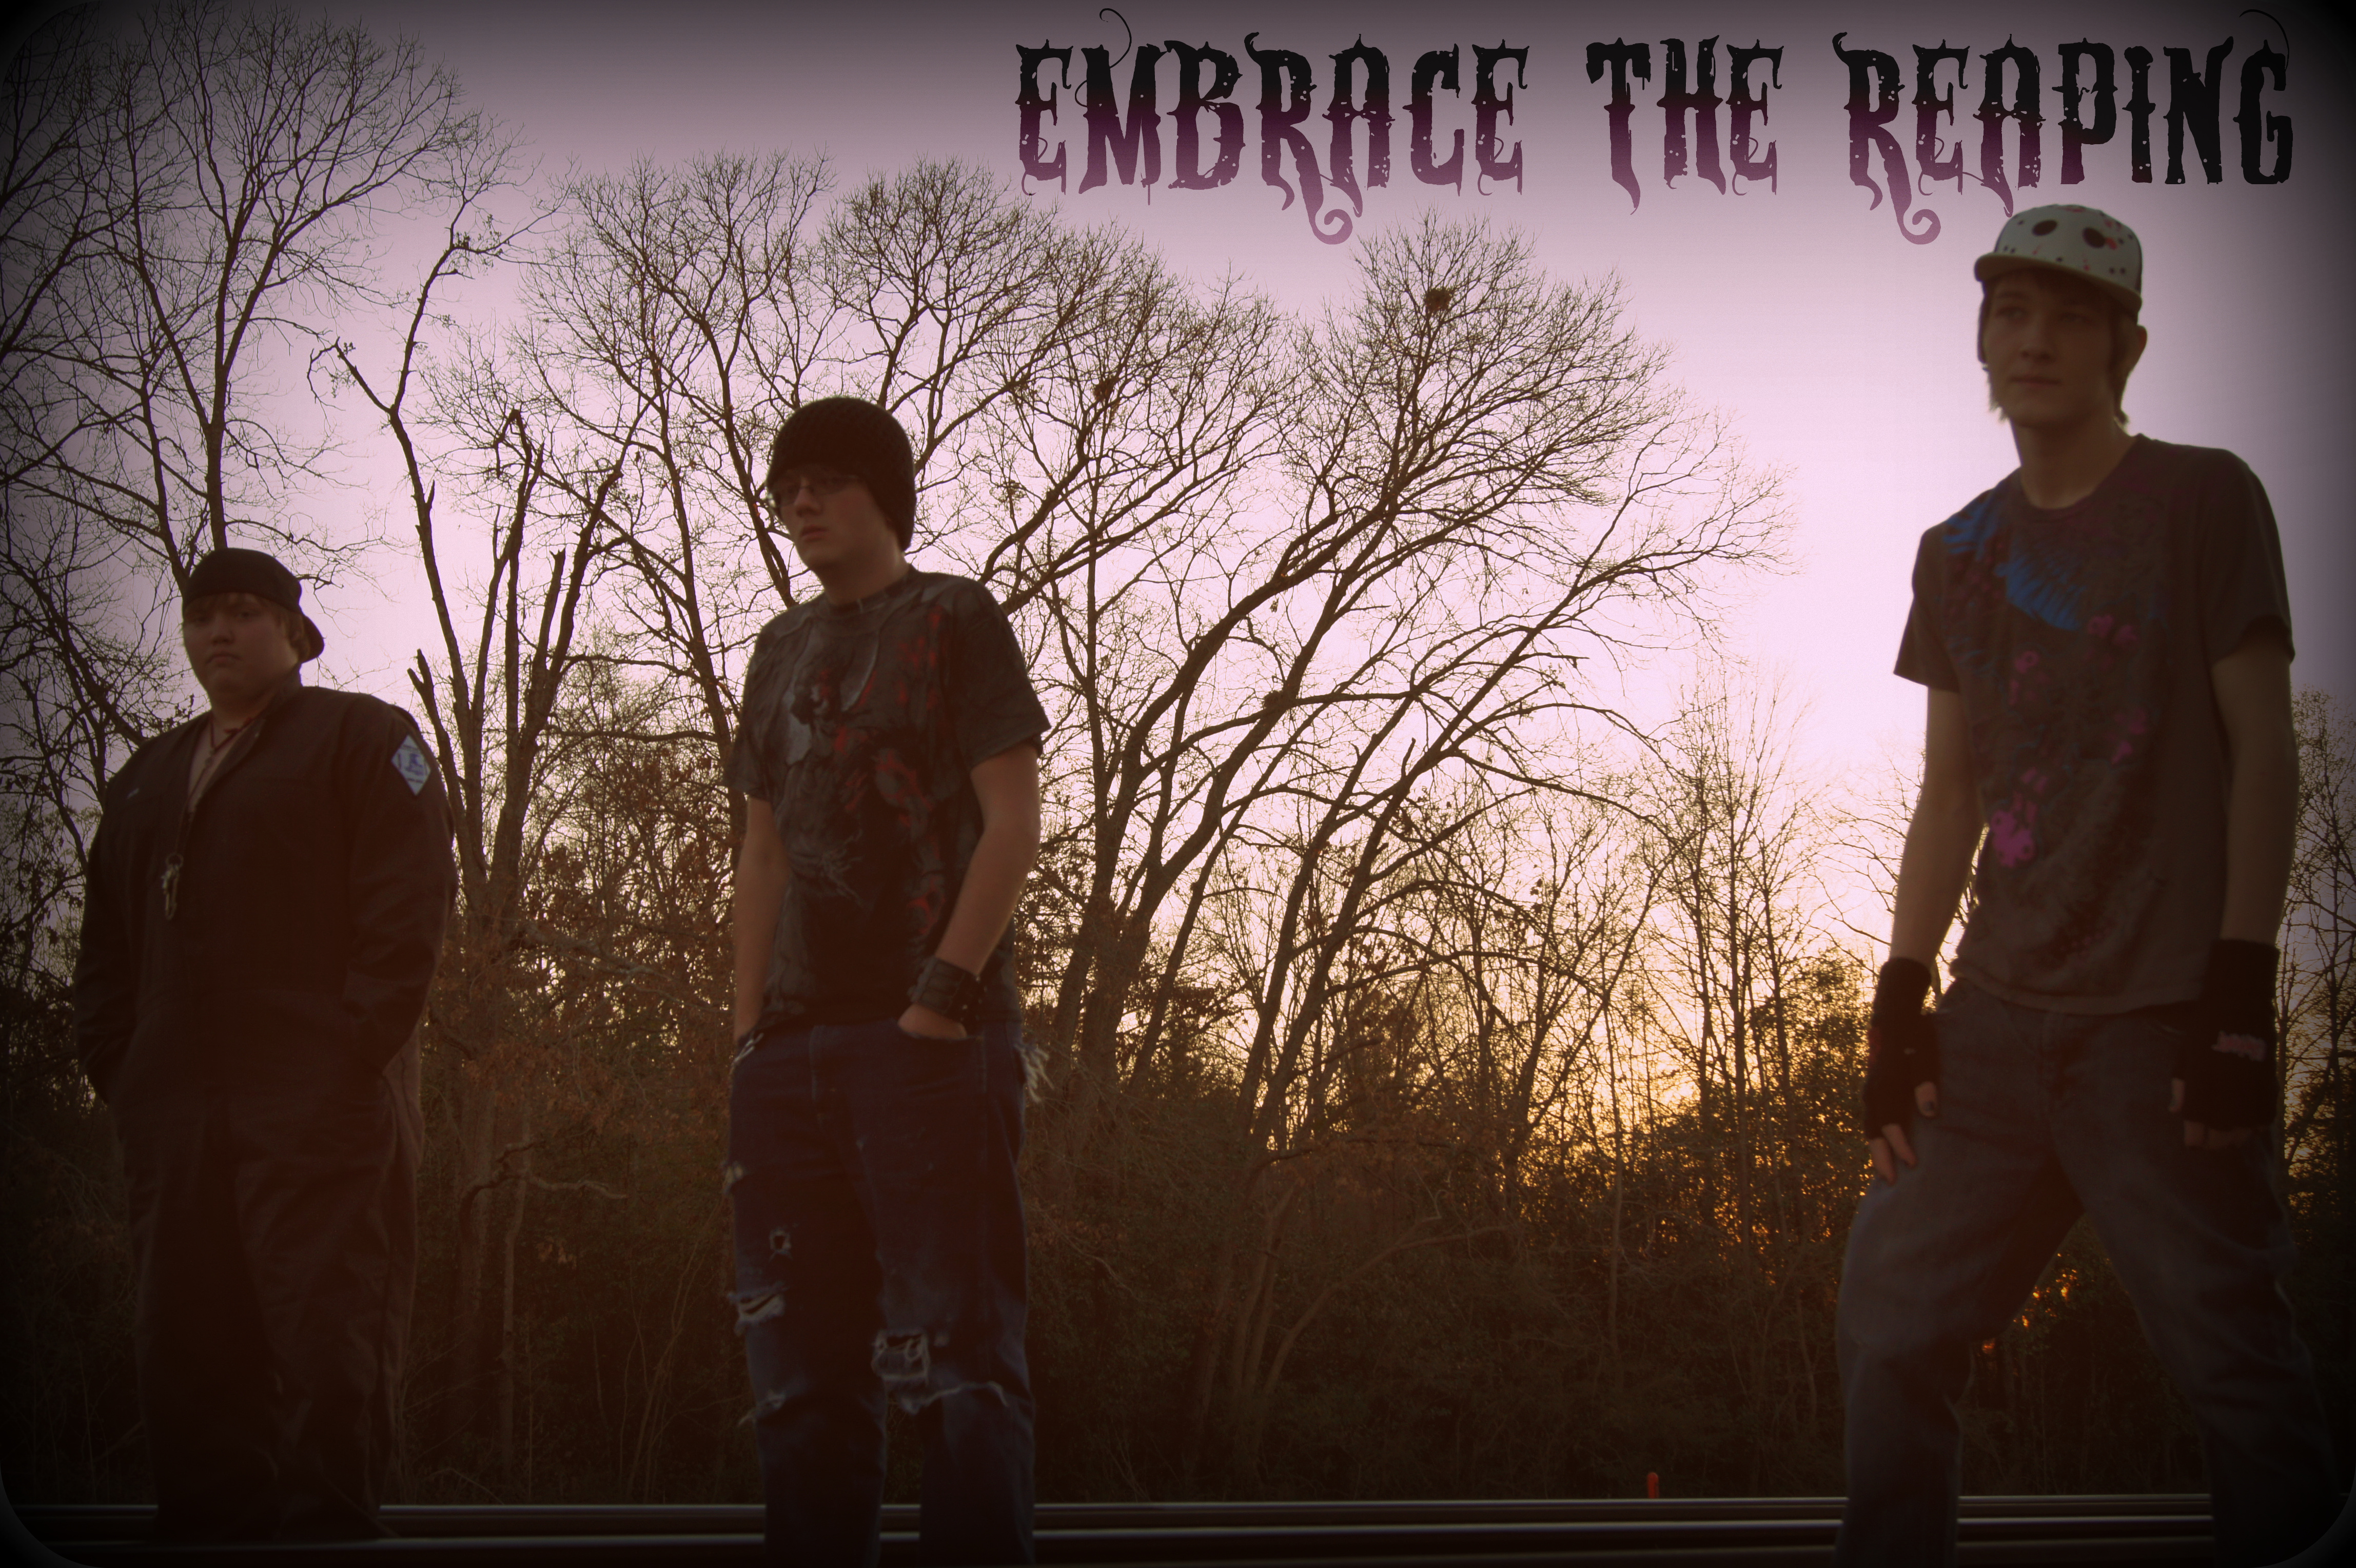 Embrace The Reaping